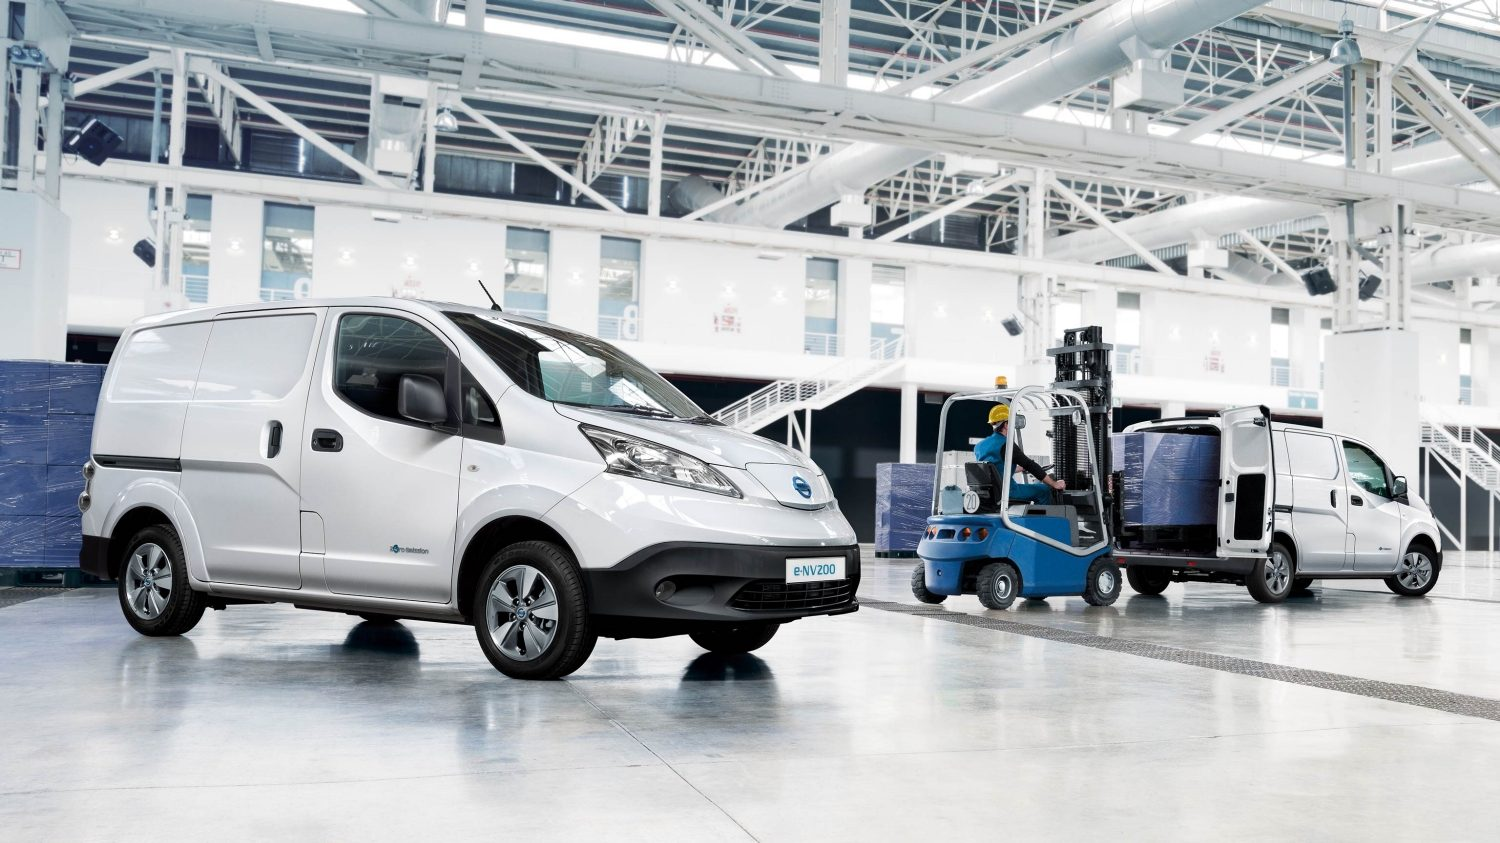 Nissan e-NV200 - 3/4 front passenger and 3/4 rear passenger with doors open